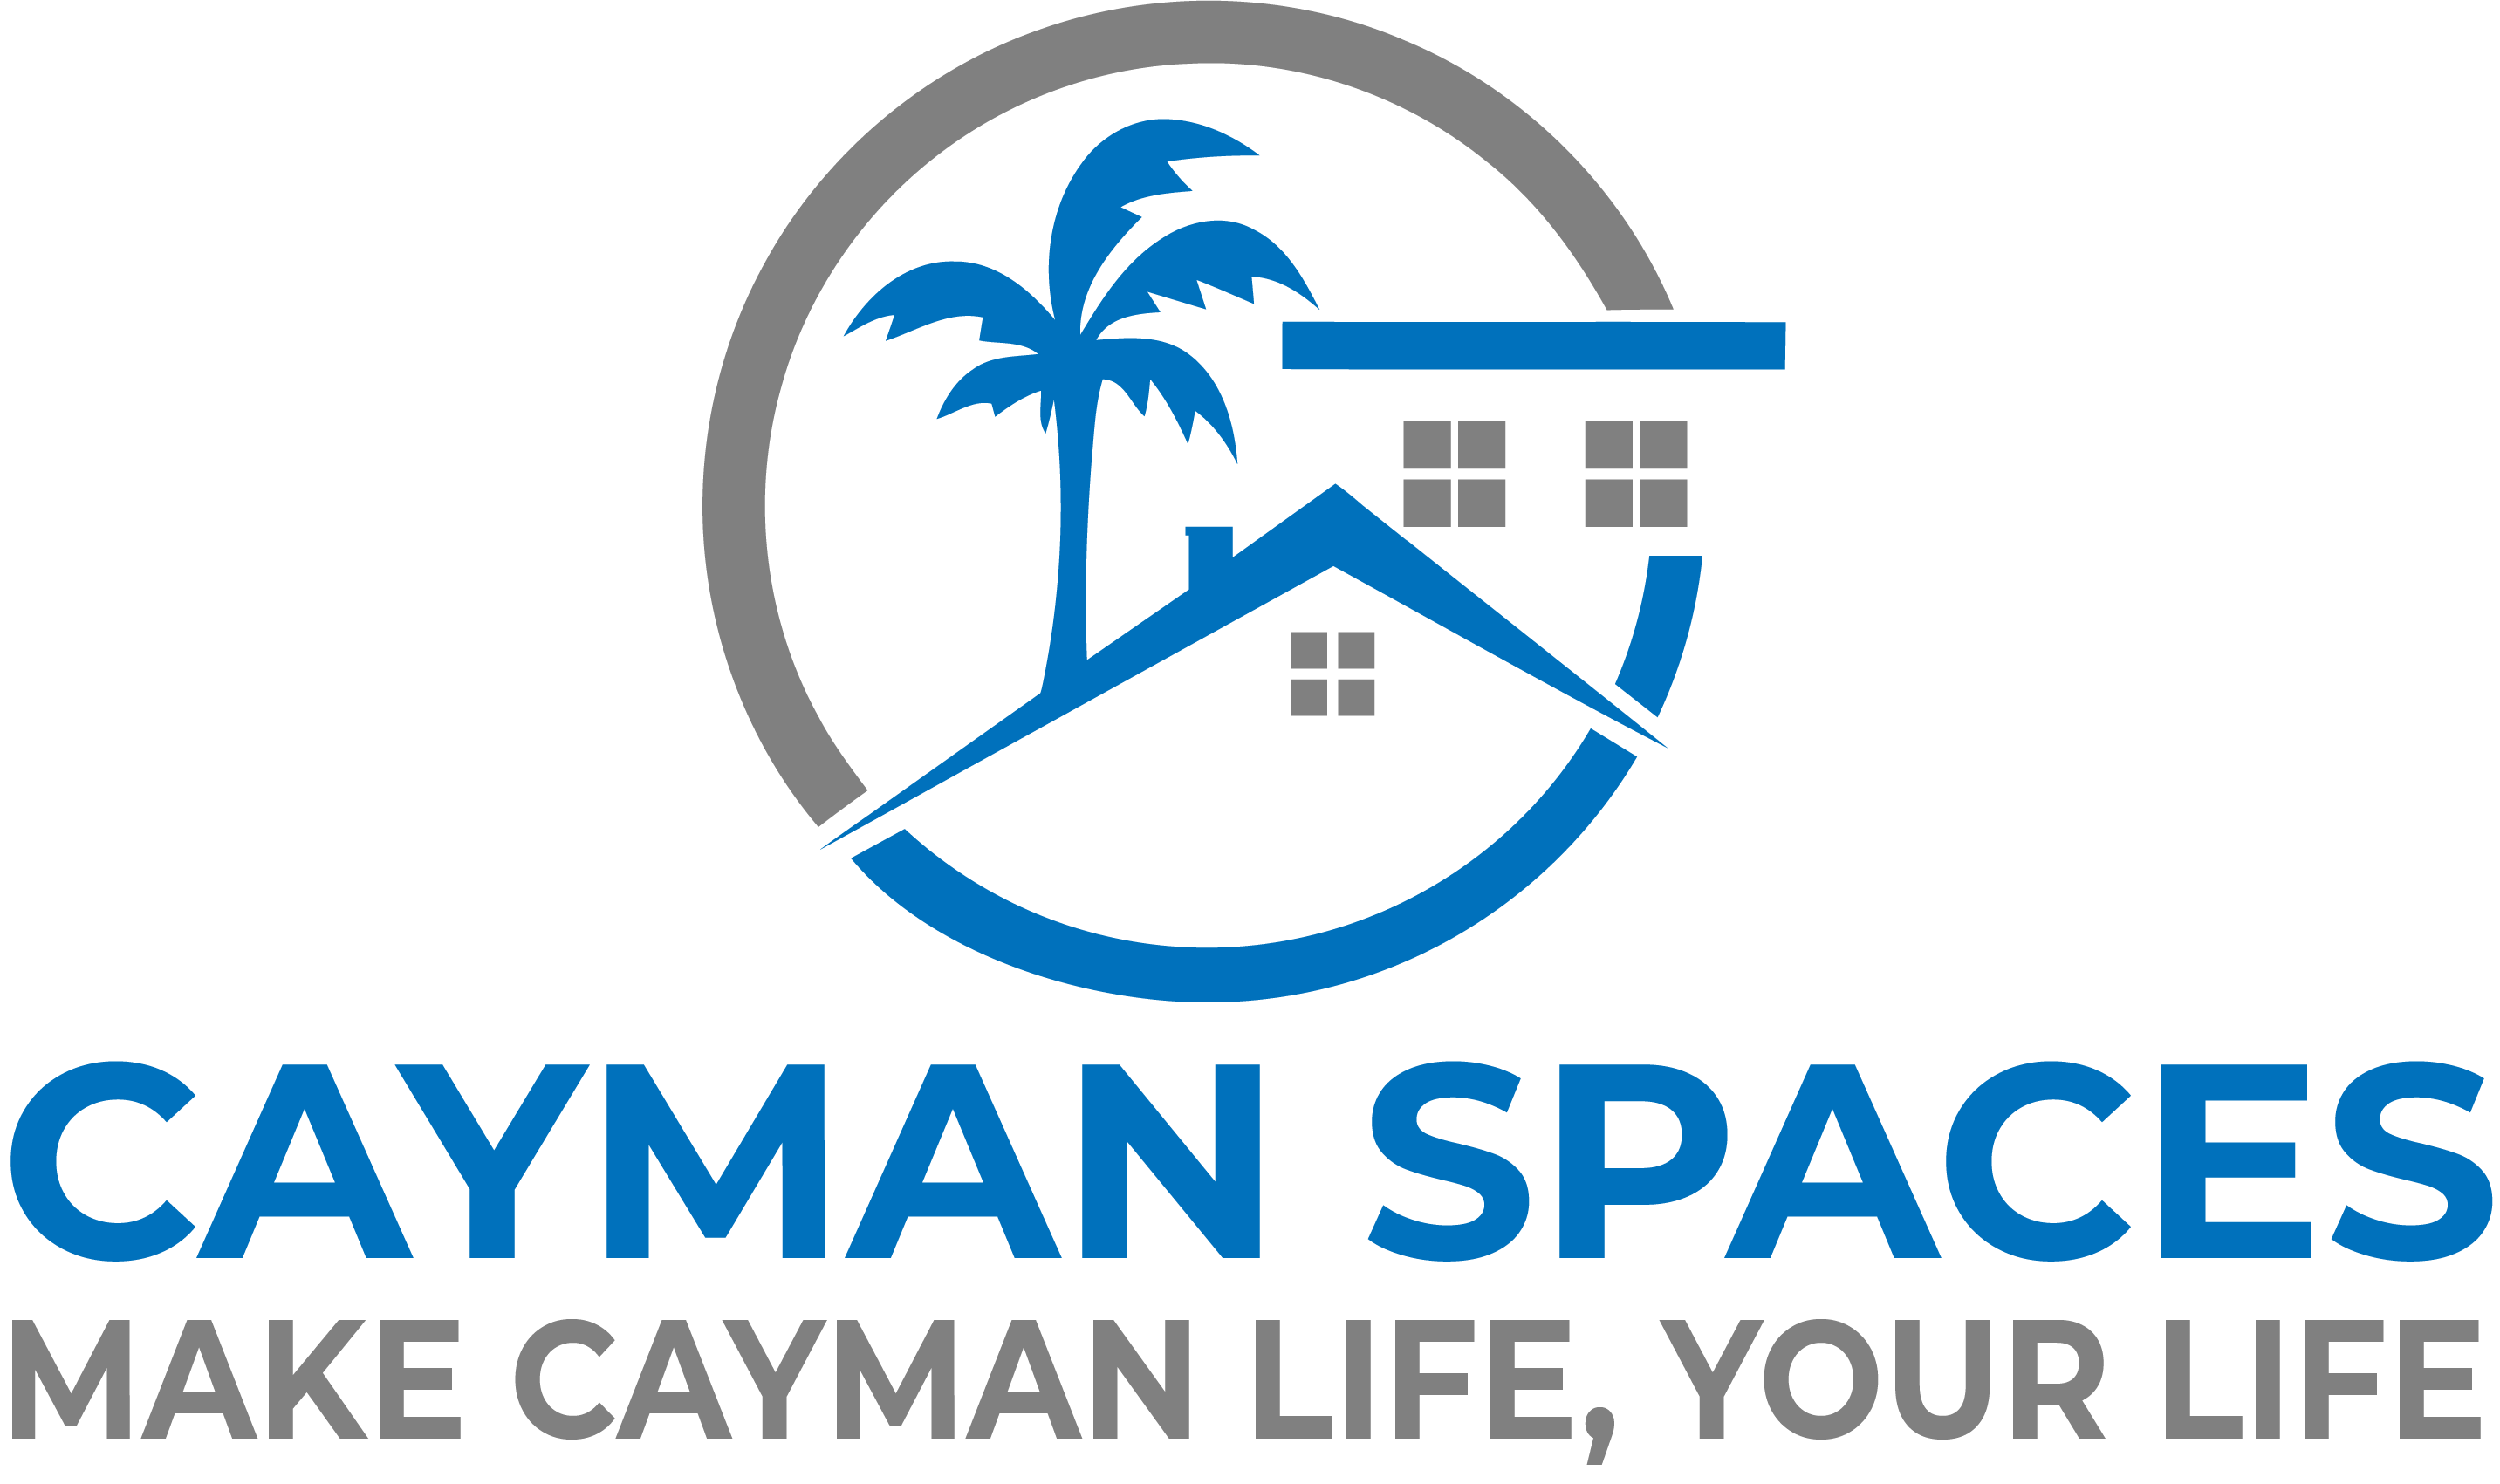 Cayman Spaces